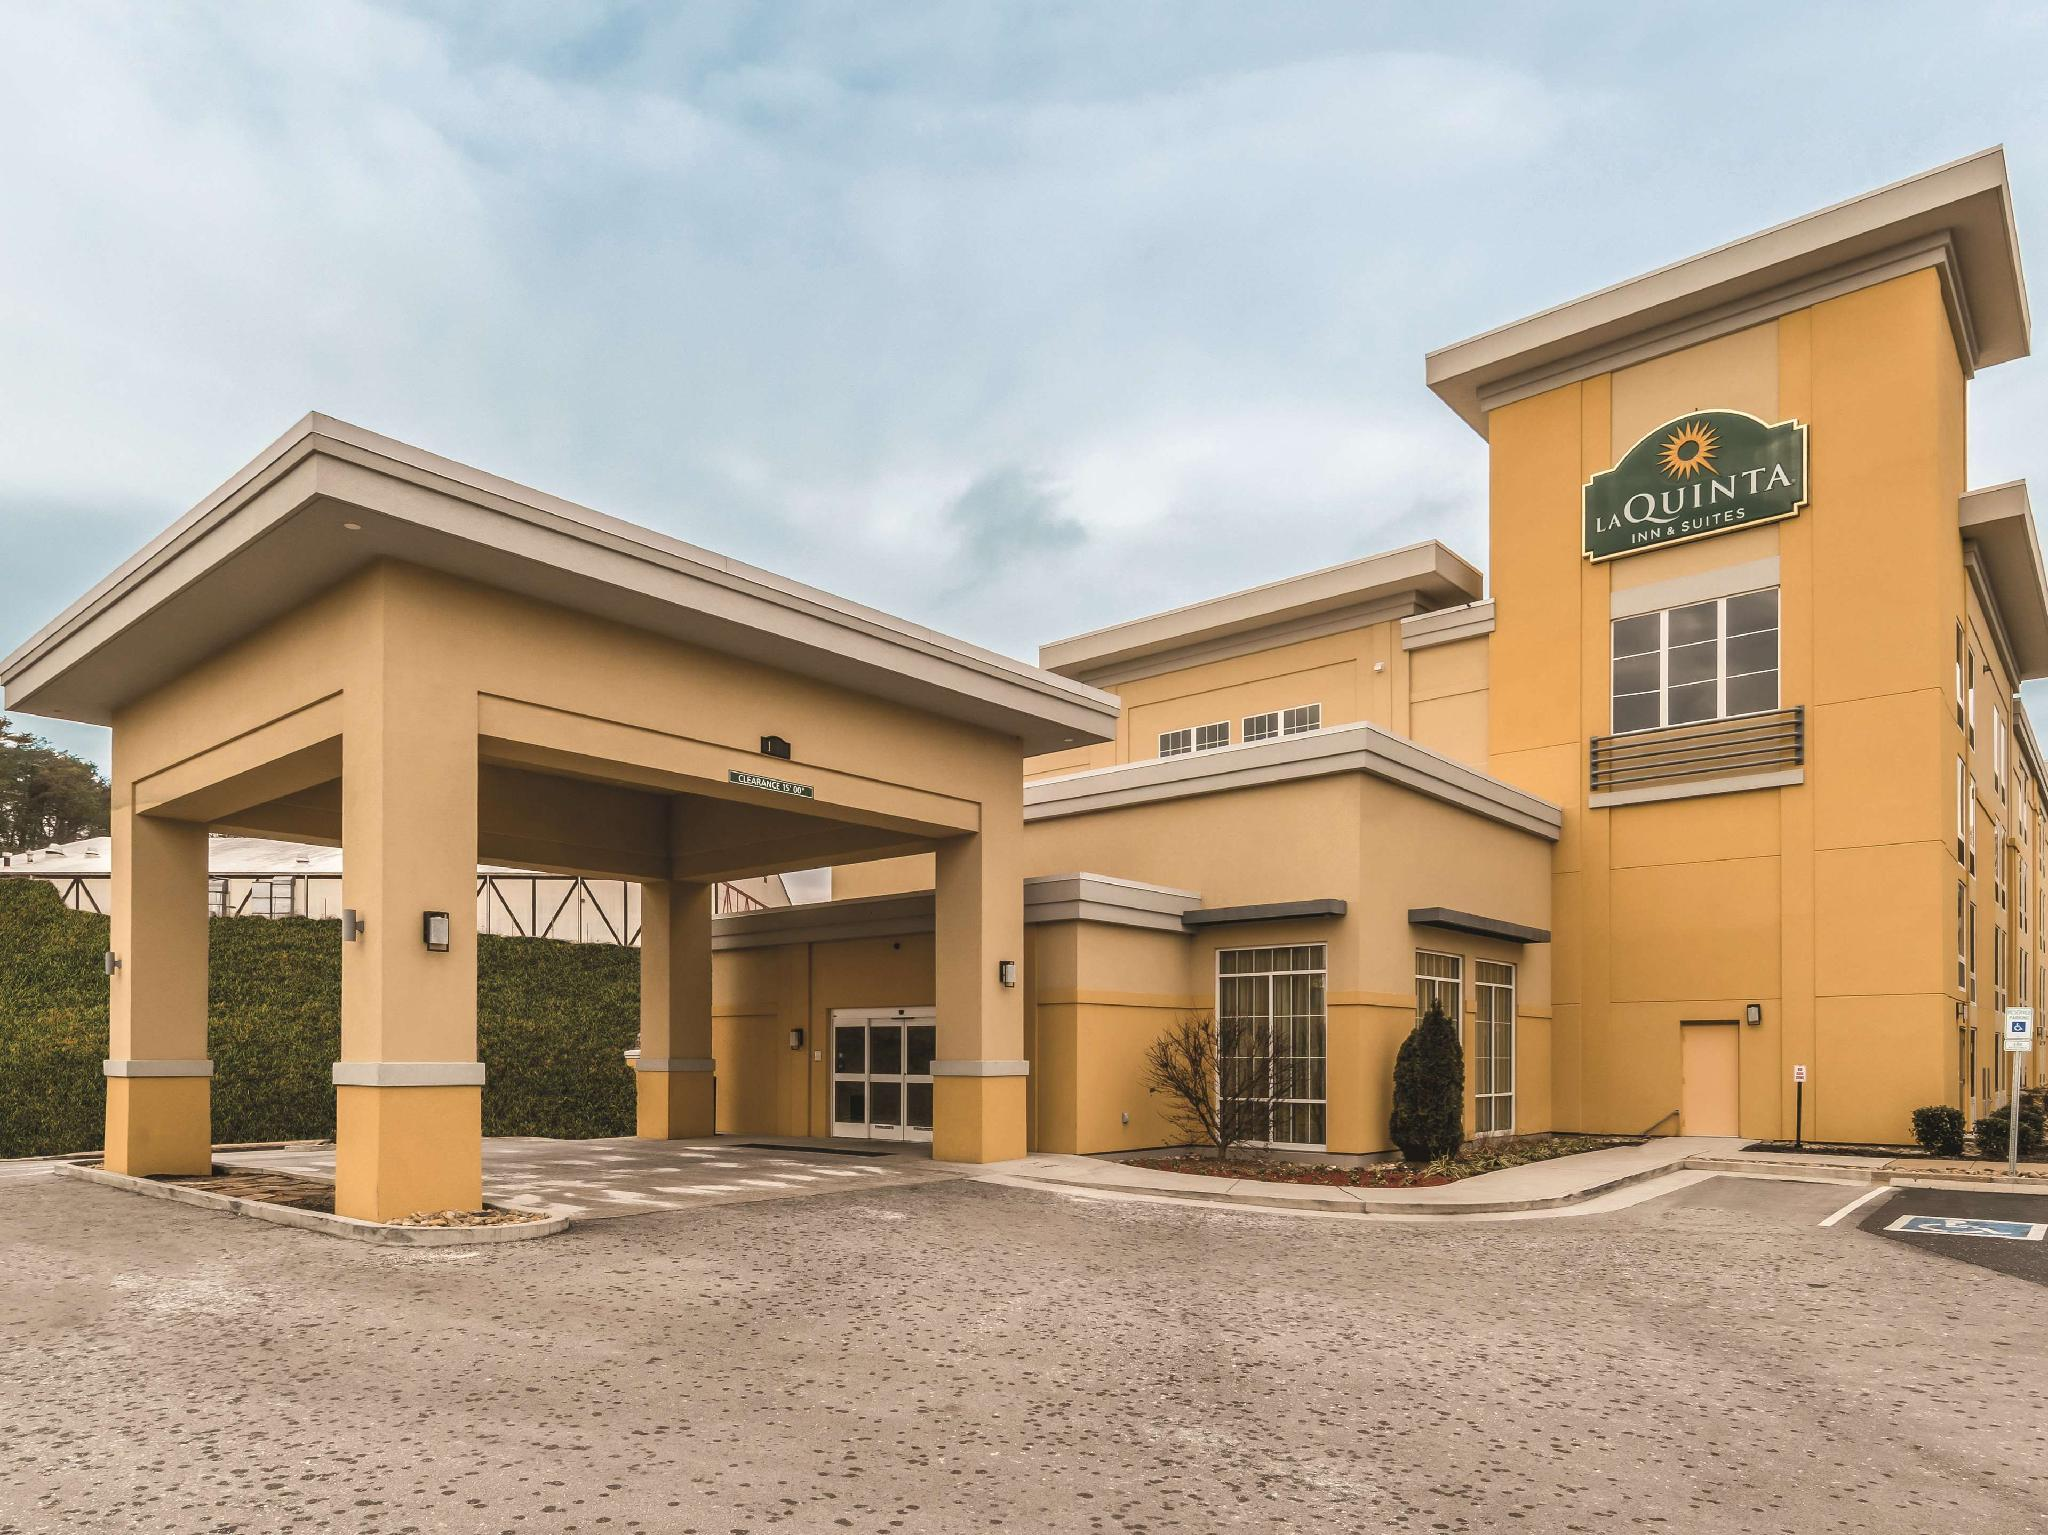 La Quinta Inn And Suites By Wyndham Knoxville Papermill